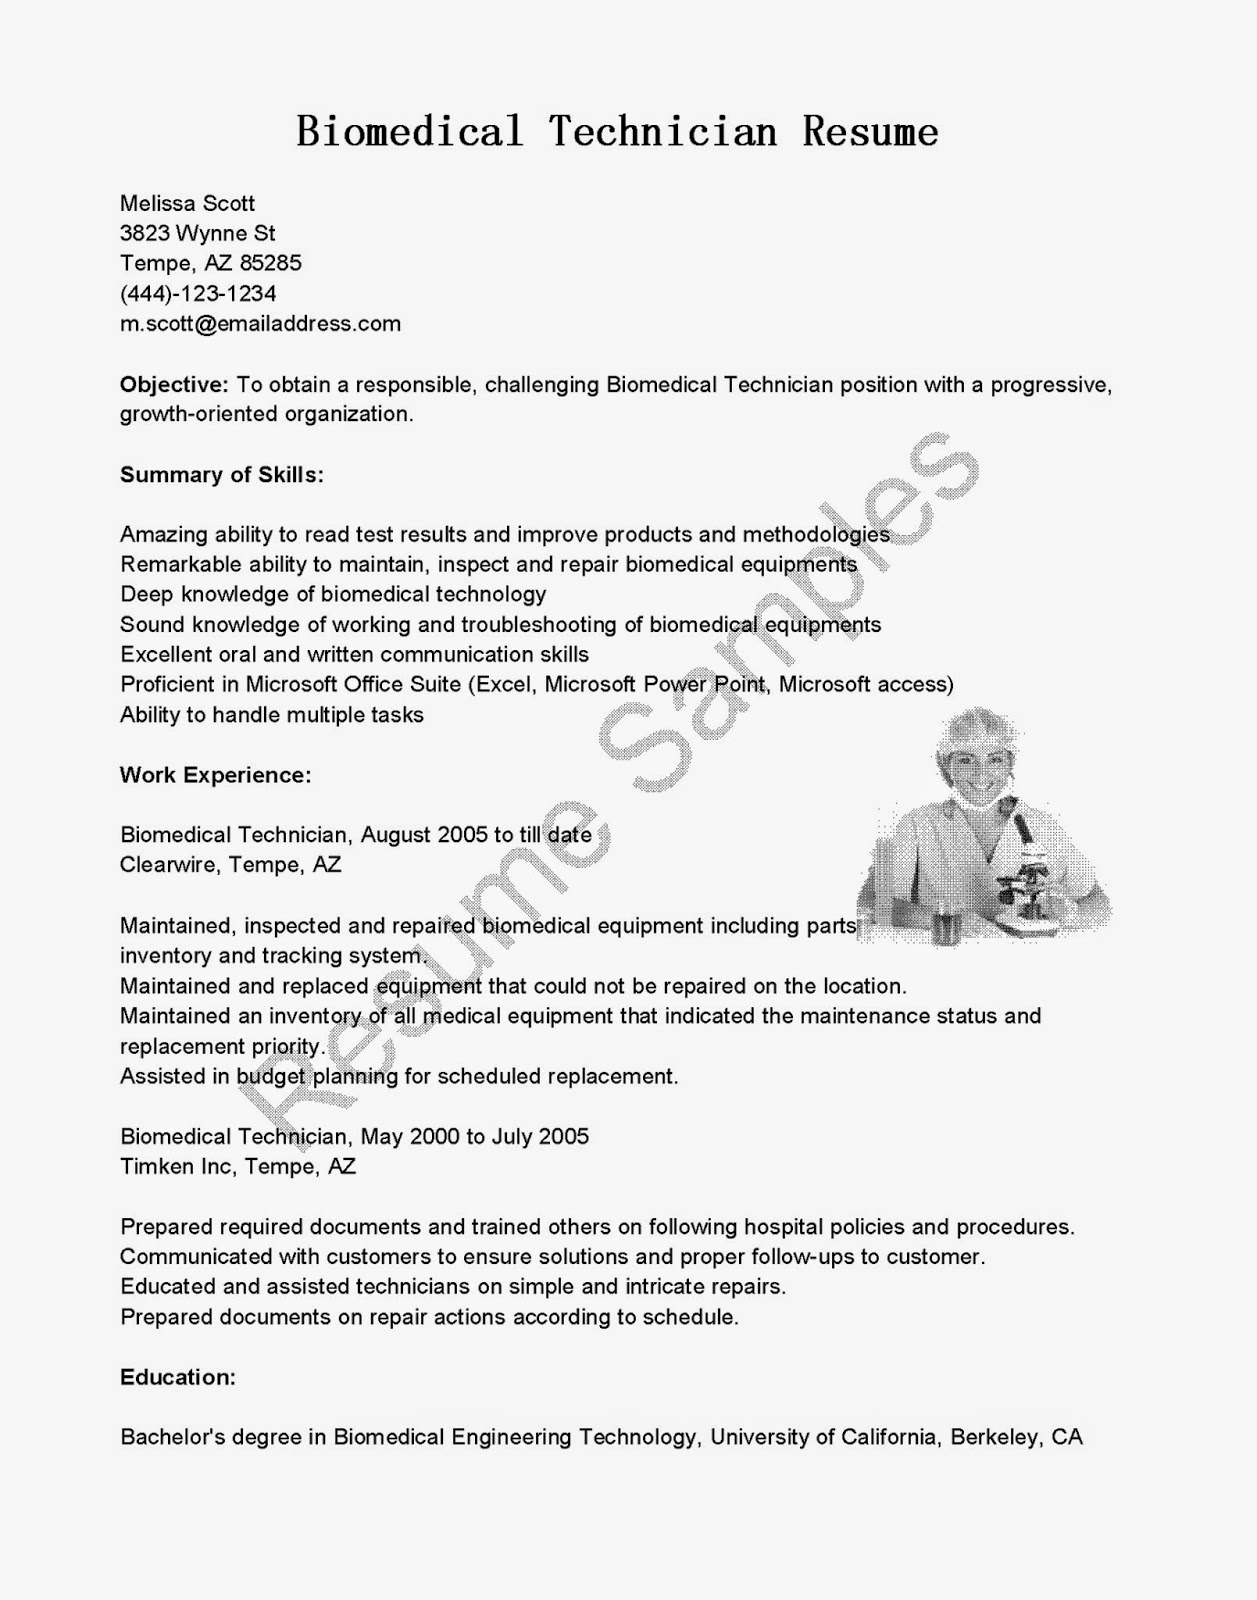 biomedical electronics technician resume sample document resume biomedical electronics technician resume electronics technician salary payscale technician resume s technician lewesmr ophthalmic technician resume